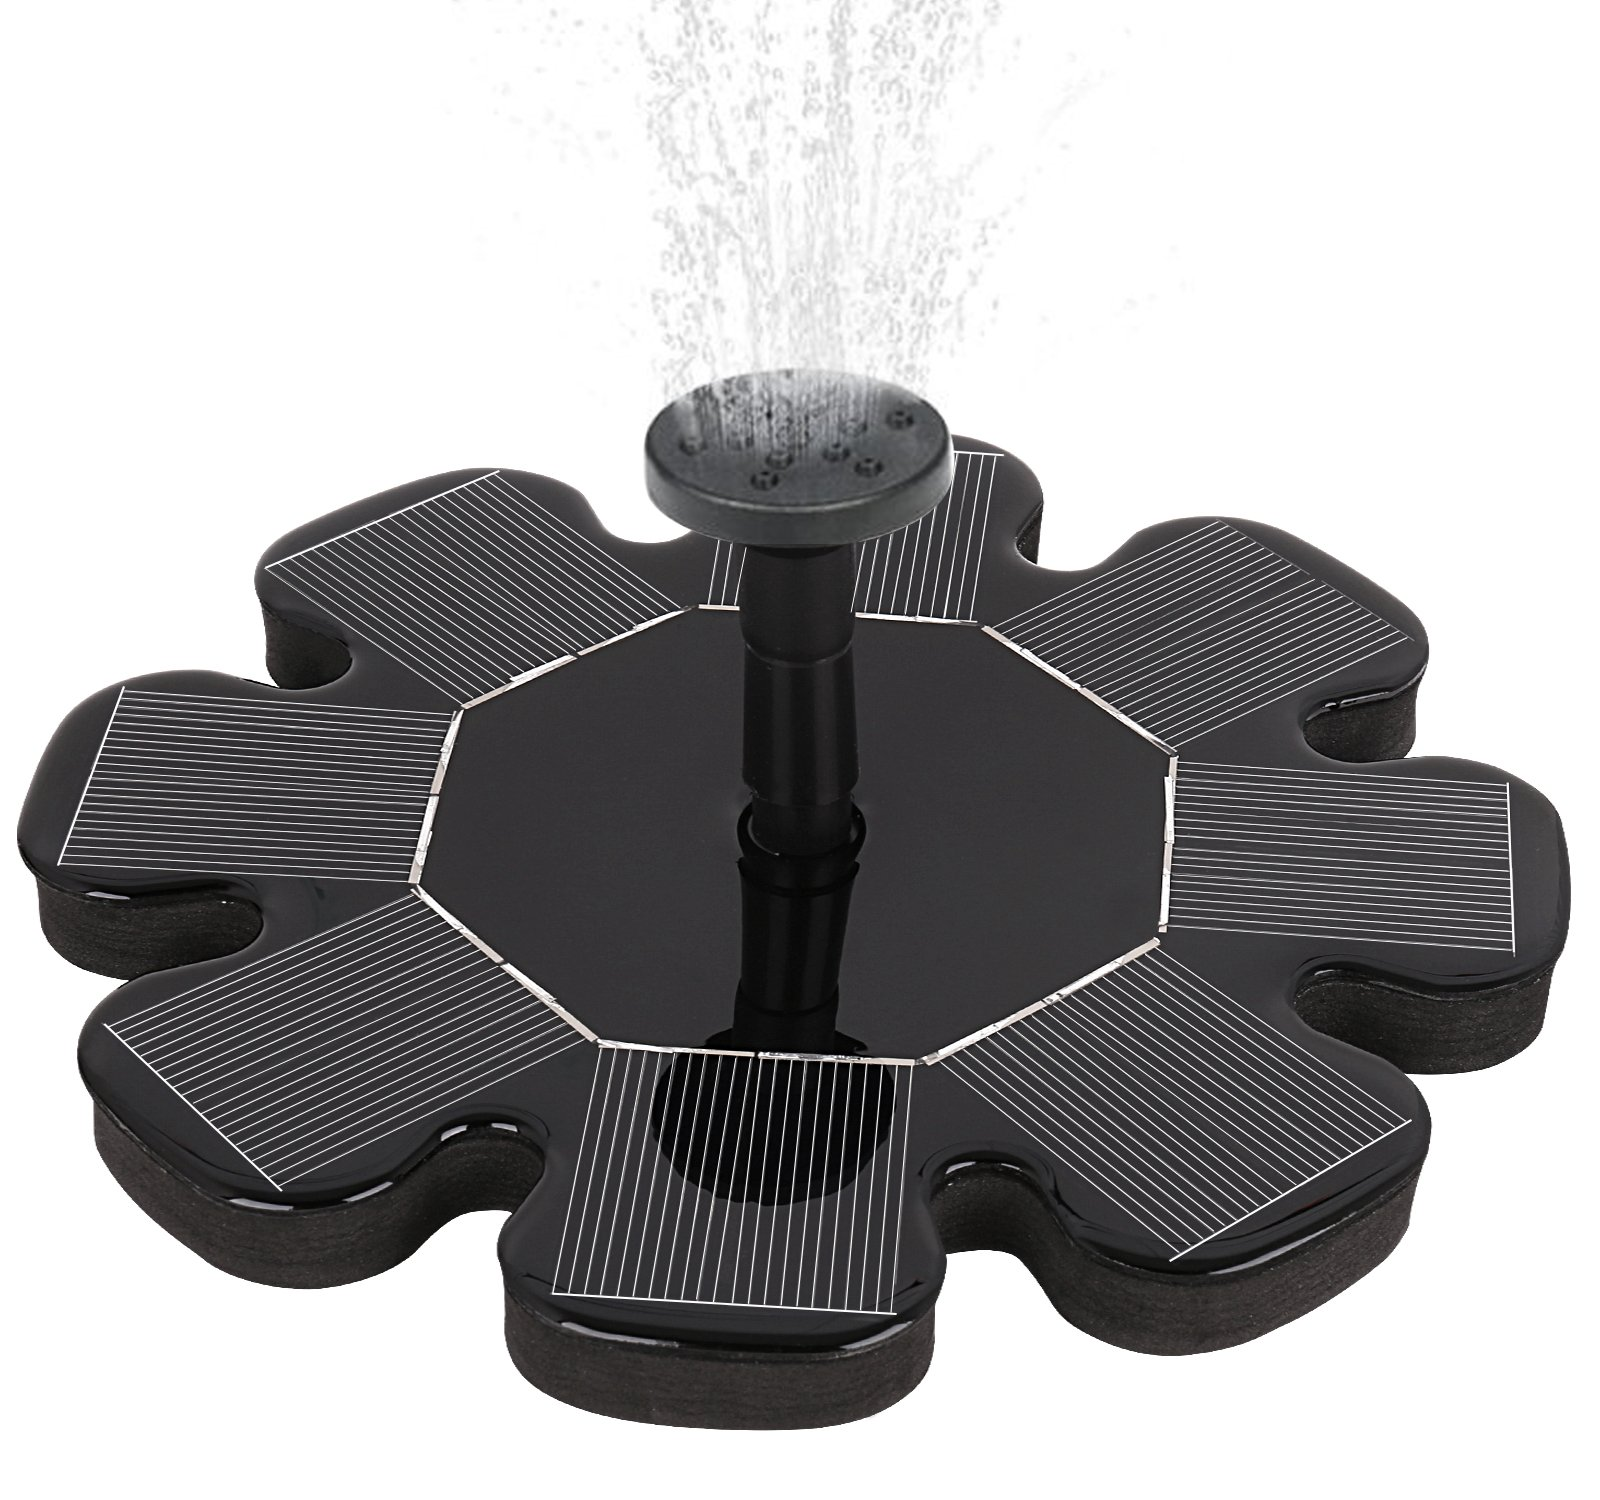 Solar Fountain Pump, Outdoor Solar Powered Bird Bath Water Fountain Pump Solar Sprinkler Fountain for Pool Garden Aquarium